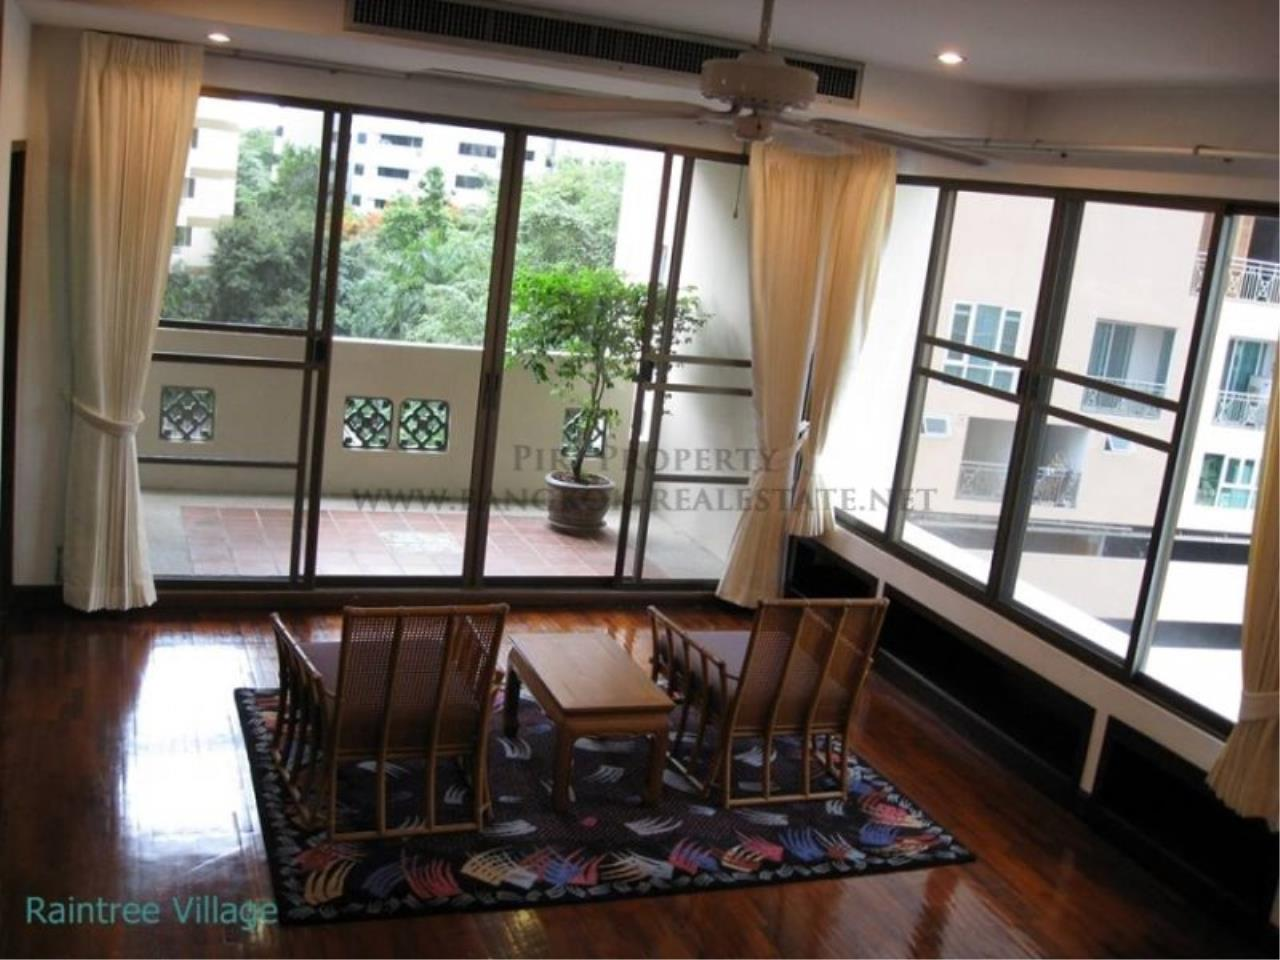 Piri Property Agency's Spacious Family Apartment in Phrom Phong for Rent - 3 Bed 9